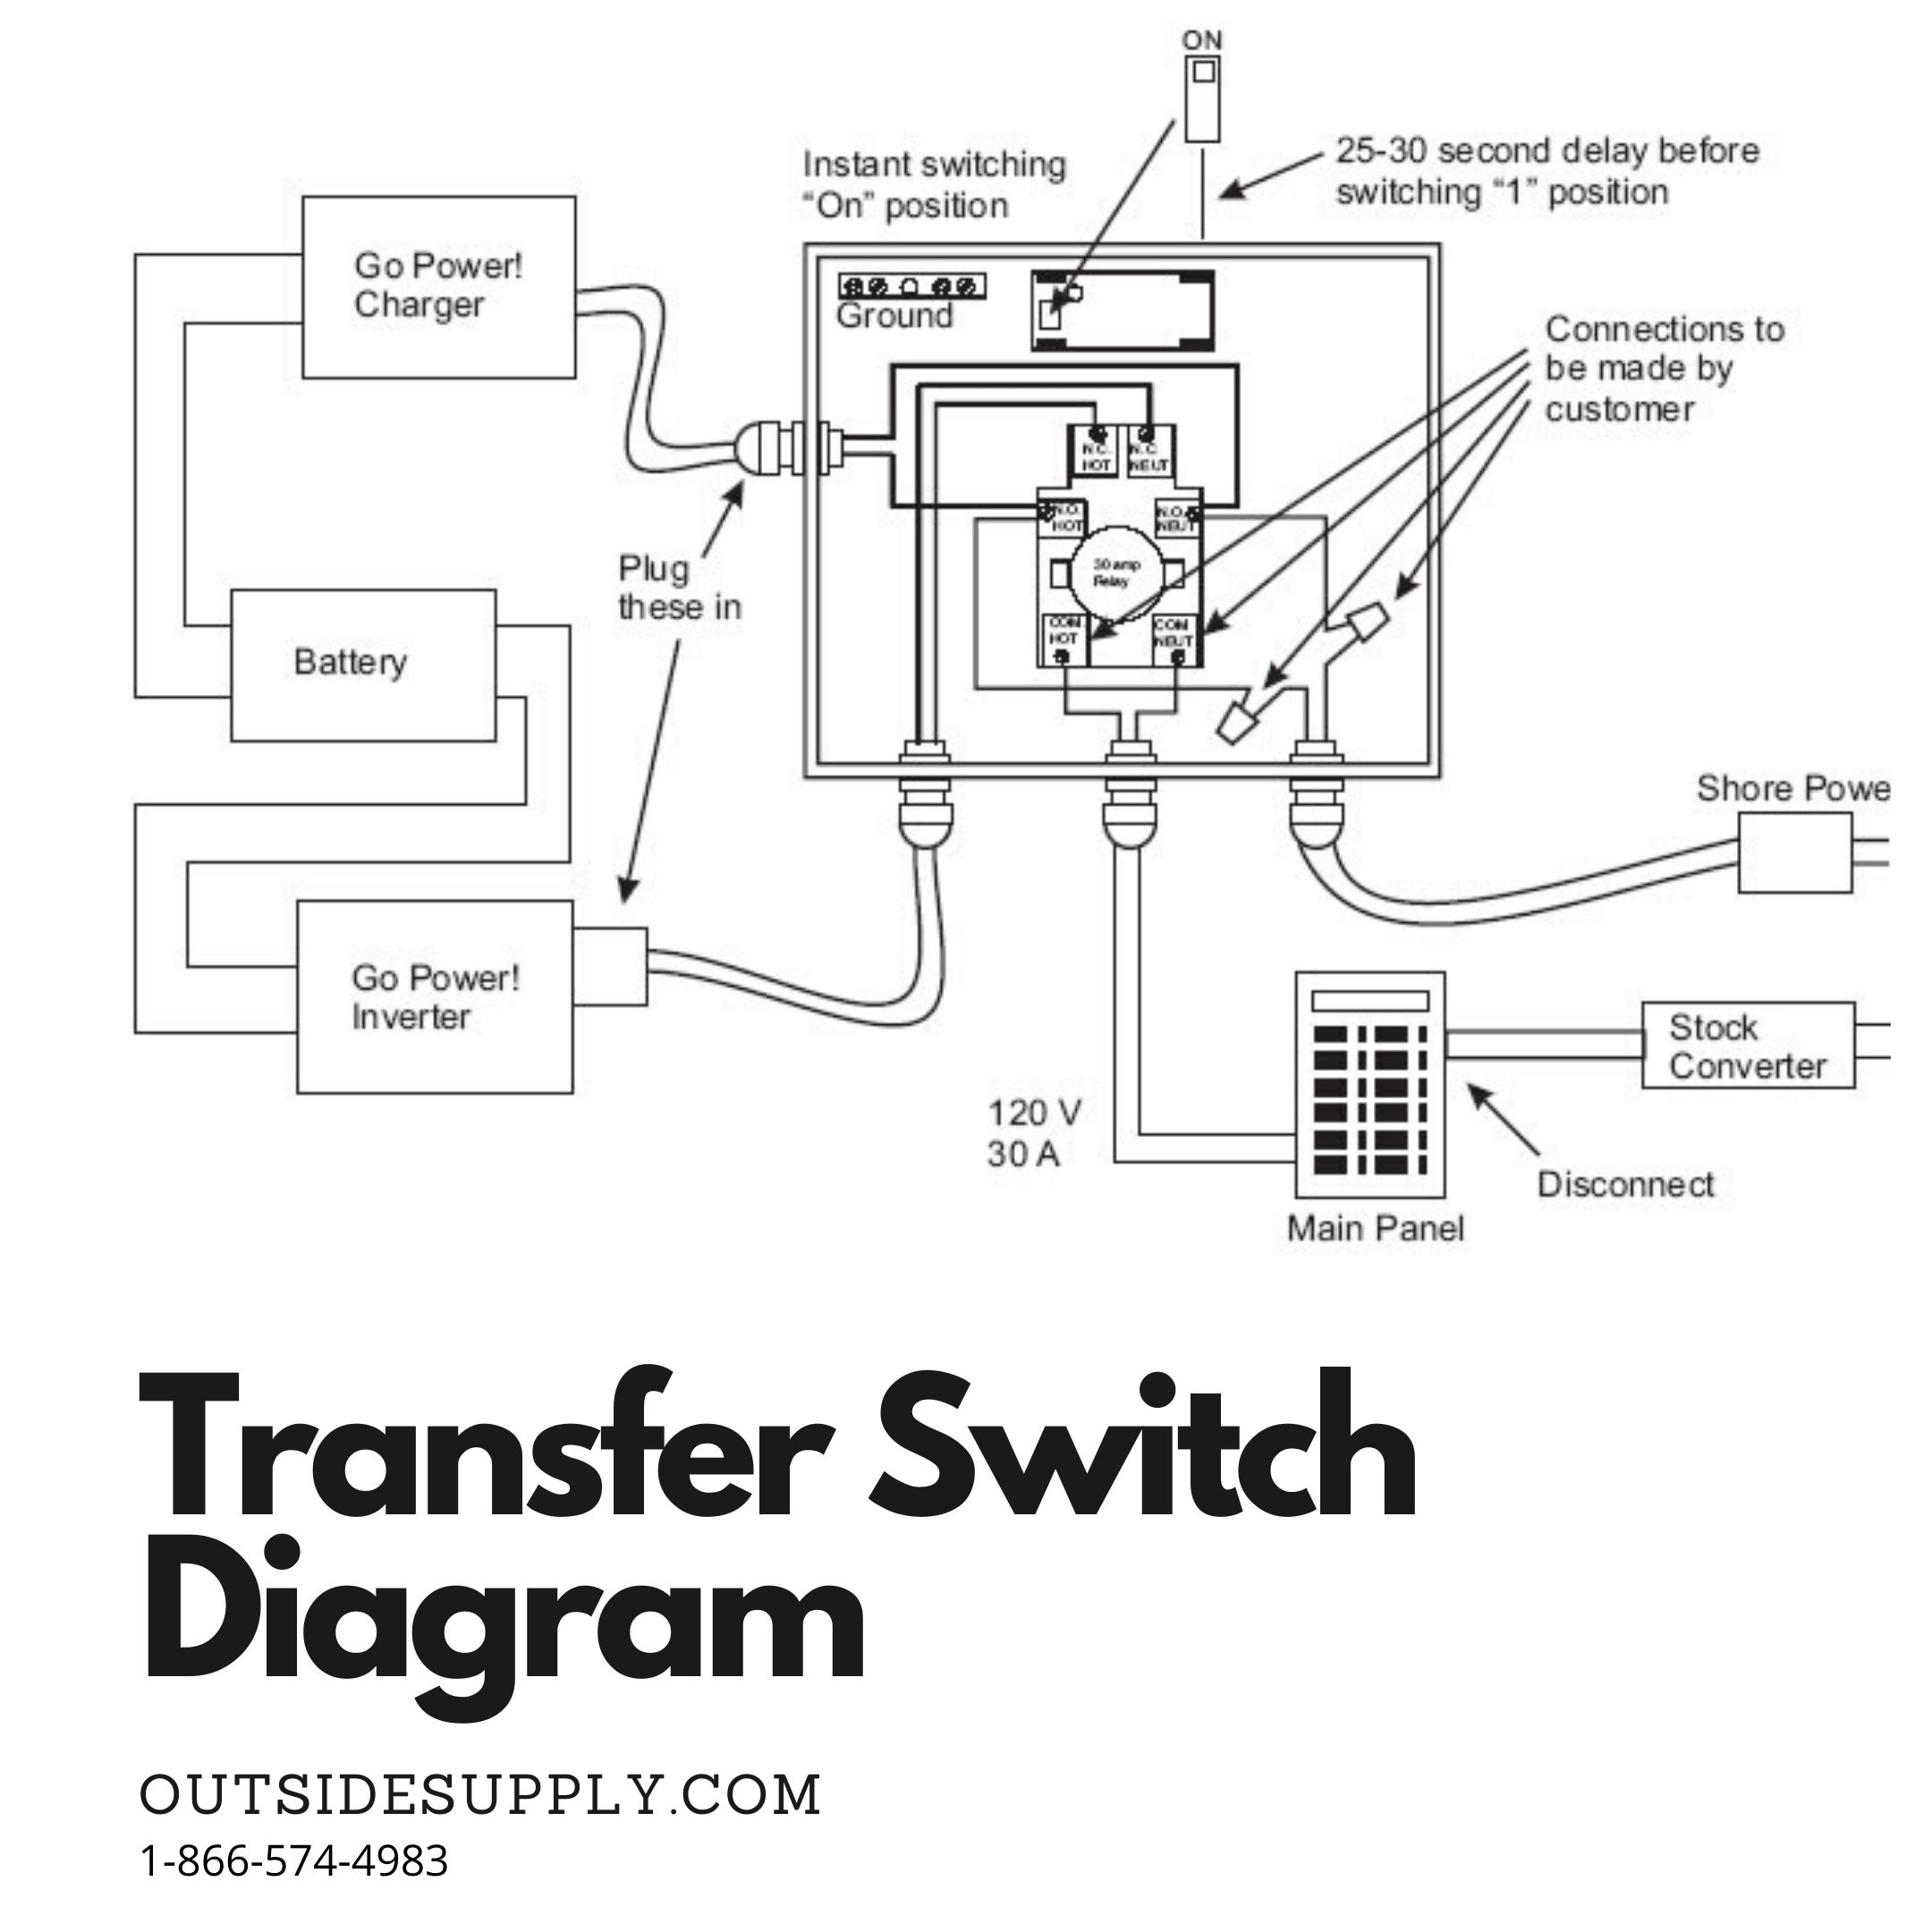 transfer switch wiring_diagram?resized659%2C4676ssld1 generator automatic transfer switch wiring diagram efcaviation com cutler hammer automatic transfer switch wiring diagram at nearapp.co